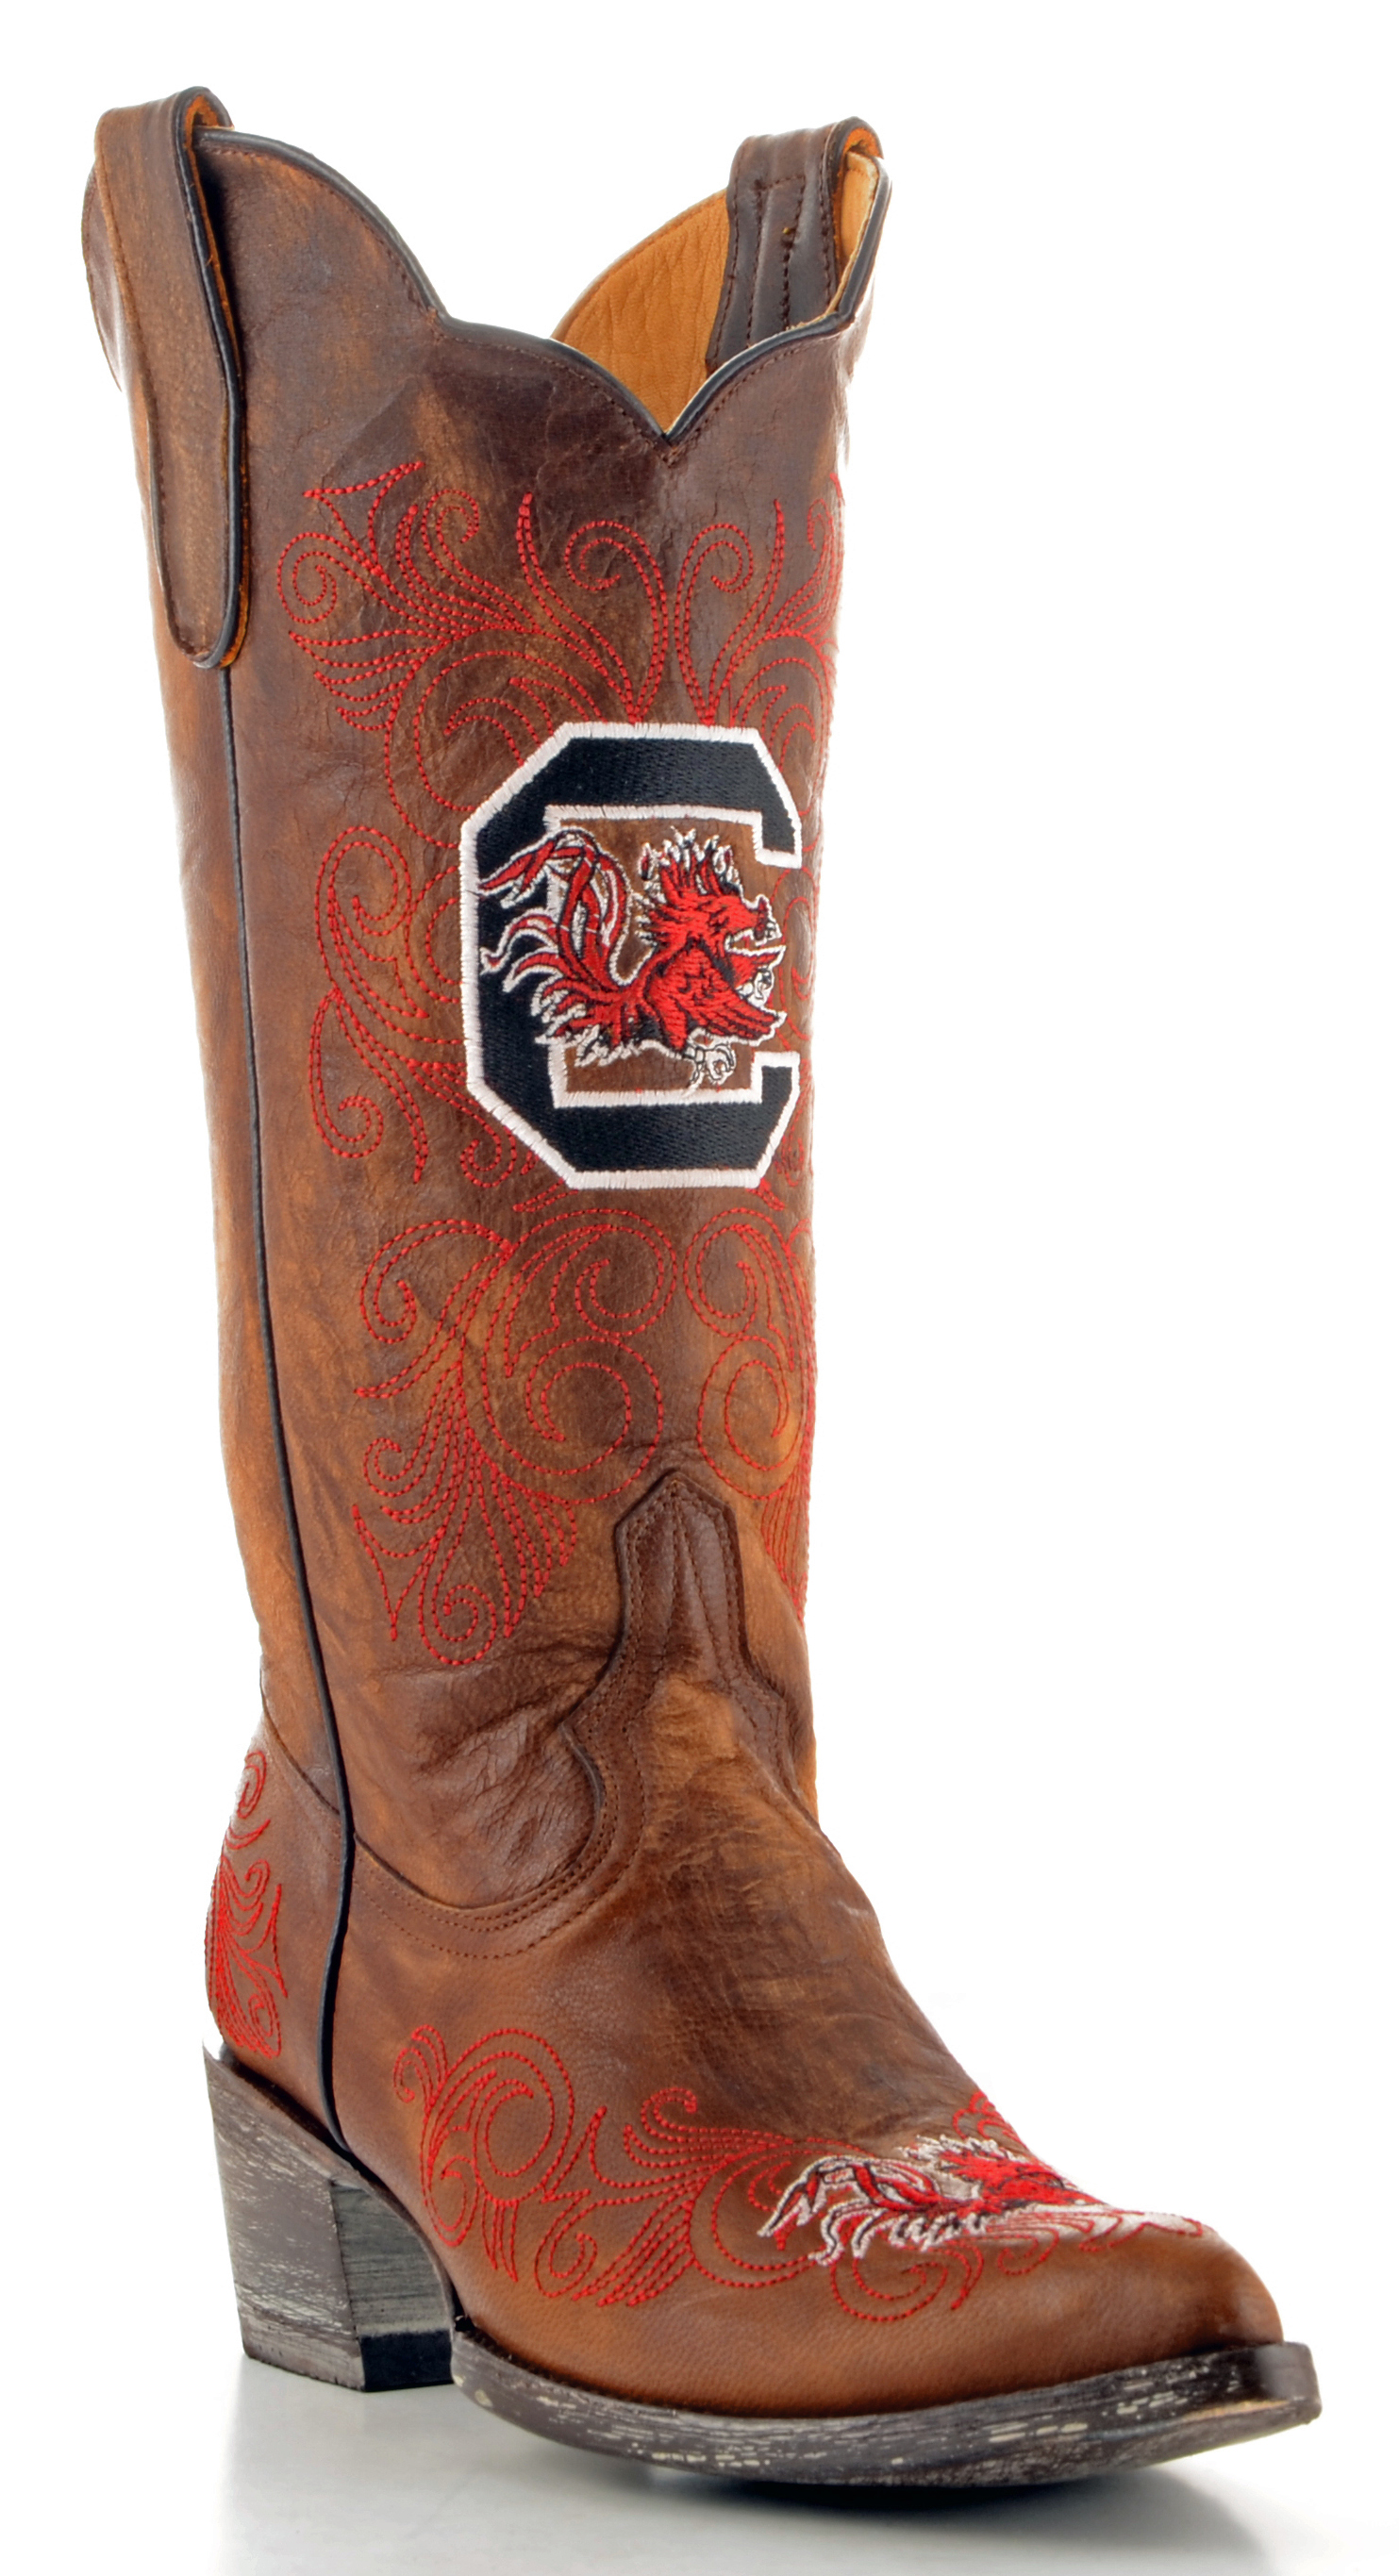 Gameday Boots Womens College Team South Carolina Brass Red USC-L086-1 by GameDay Boots